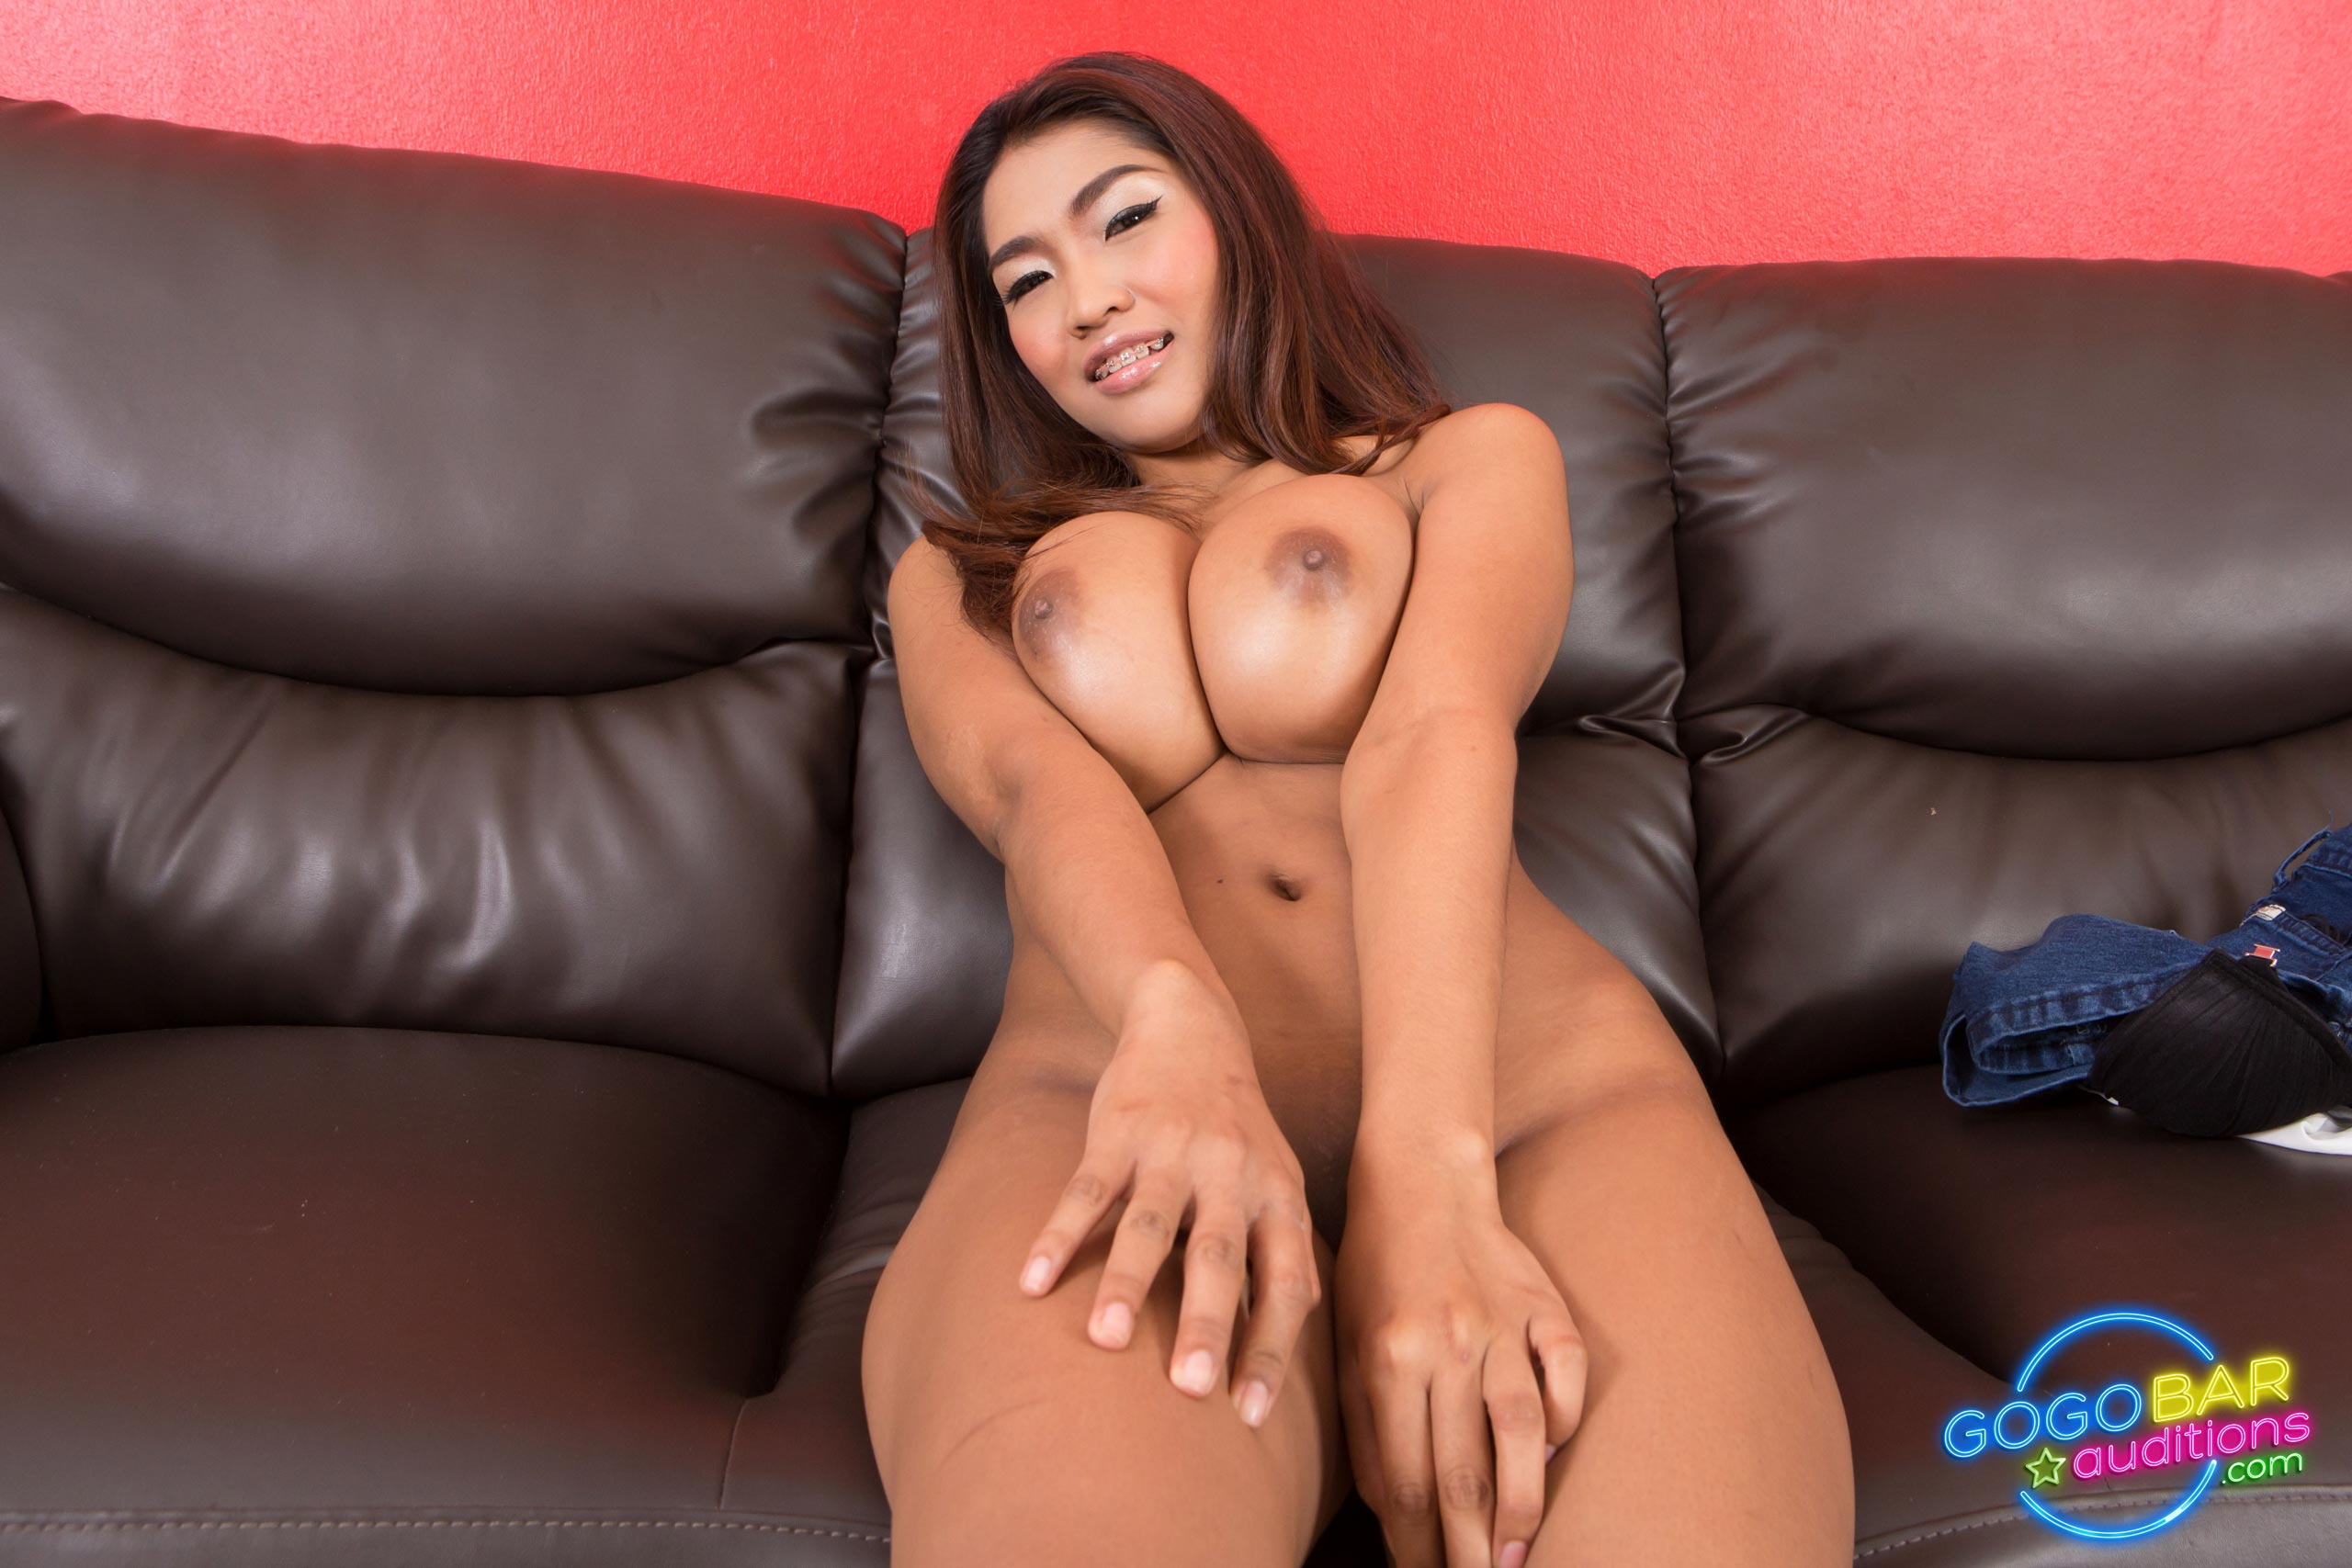 Pija danny shaved her legs and then he was a she sexy pussy